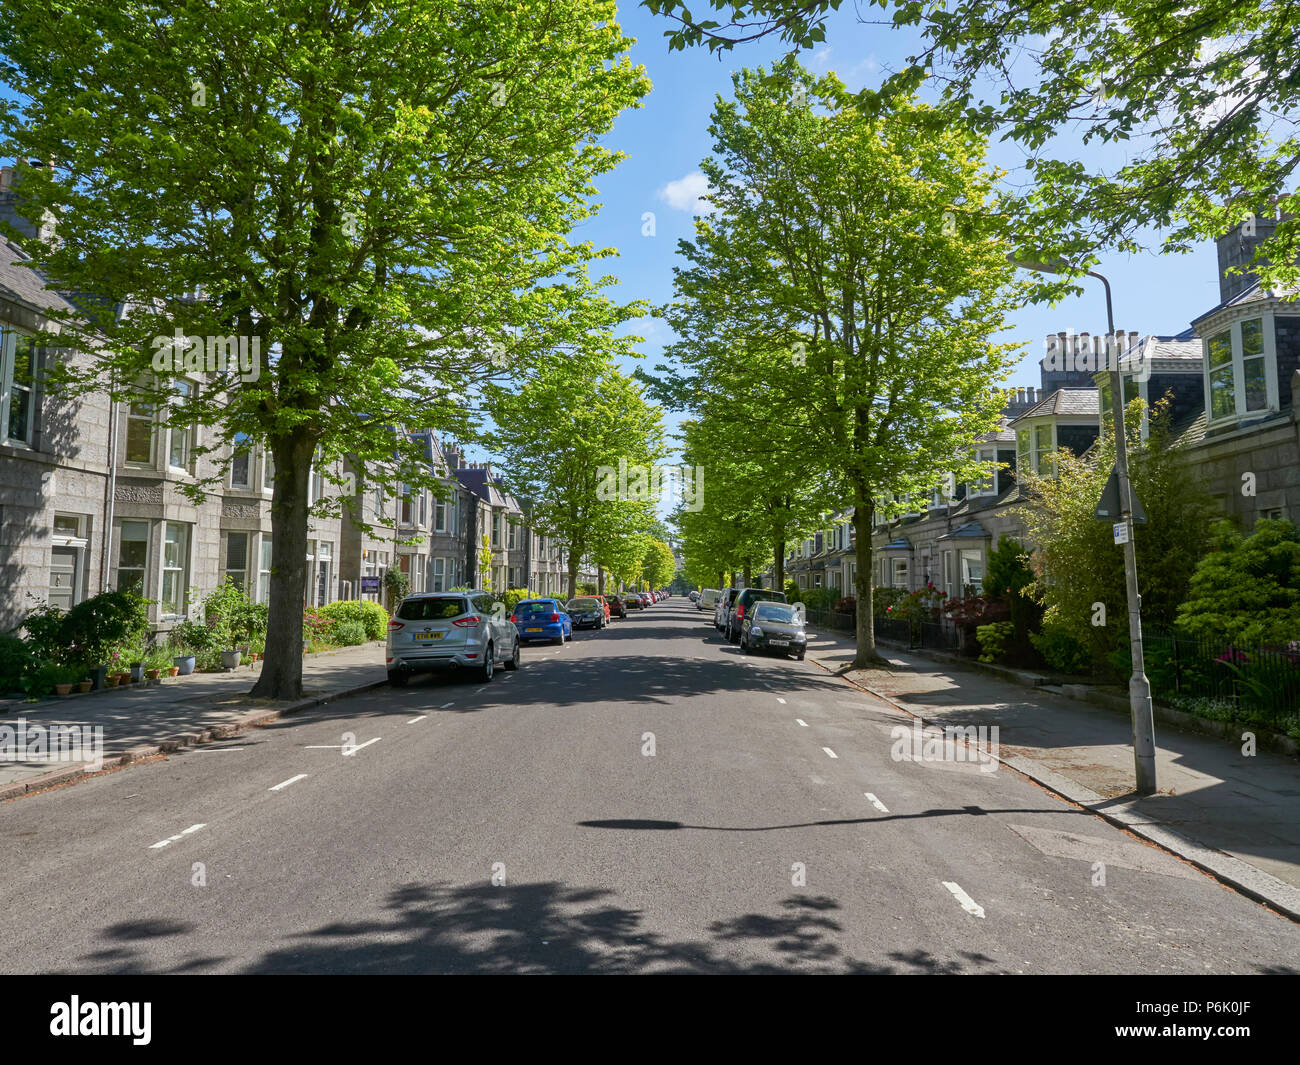 The shaded pavements of an Aberdeen City Tree lined street, with cars parked outside Residents Houses on a Summers Morning. Aberdeen, Scotland. - Stock Image